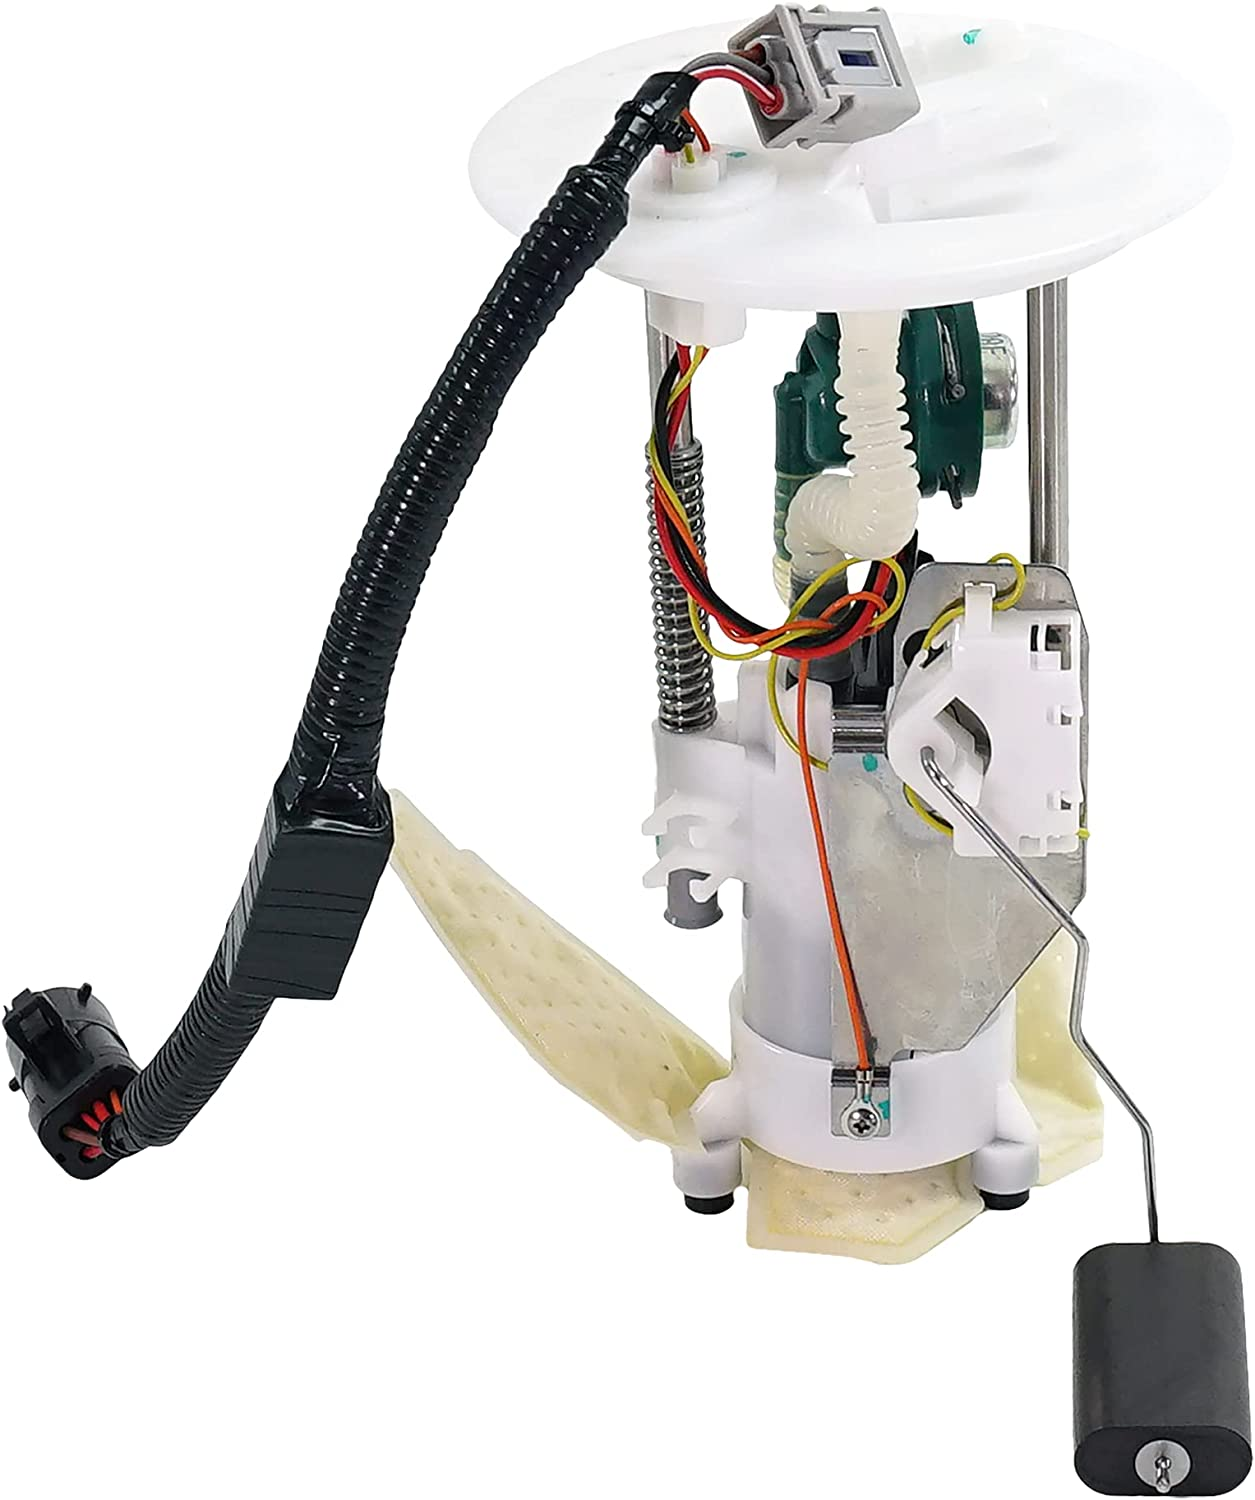 Garage-Pro Fuel Pump Compatible with Explorer Ford Fits 2003 20 Max 43% OFF Max 90% OFF